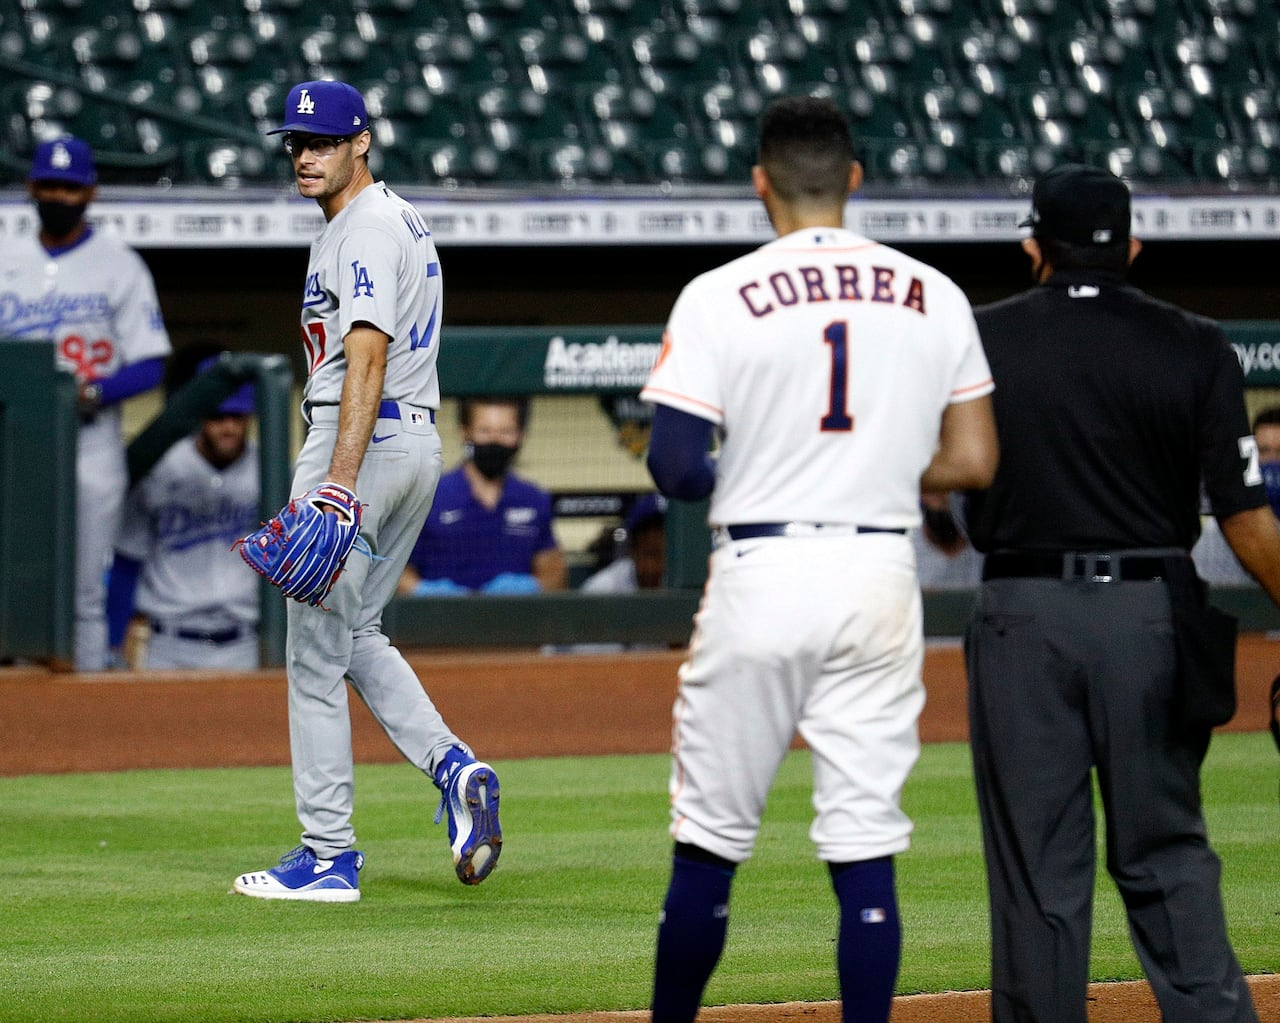 Dodgers Joe Kelly Suspended 8 Games For Throwing At Mocking Astros Cbc Sports On today's barstool rundown, kfc, kayce smith, and feitlelberg discuss joe kelly becoming a national hero, the nhl bubble being underway, a new way to eat. dodgers joe kelly suspended 8 games